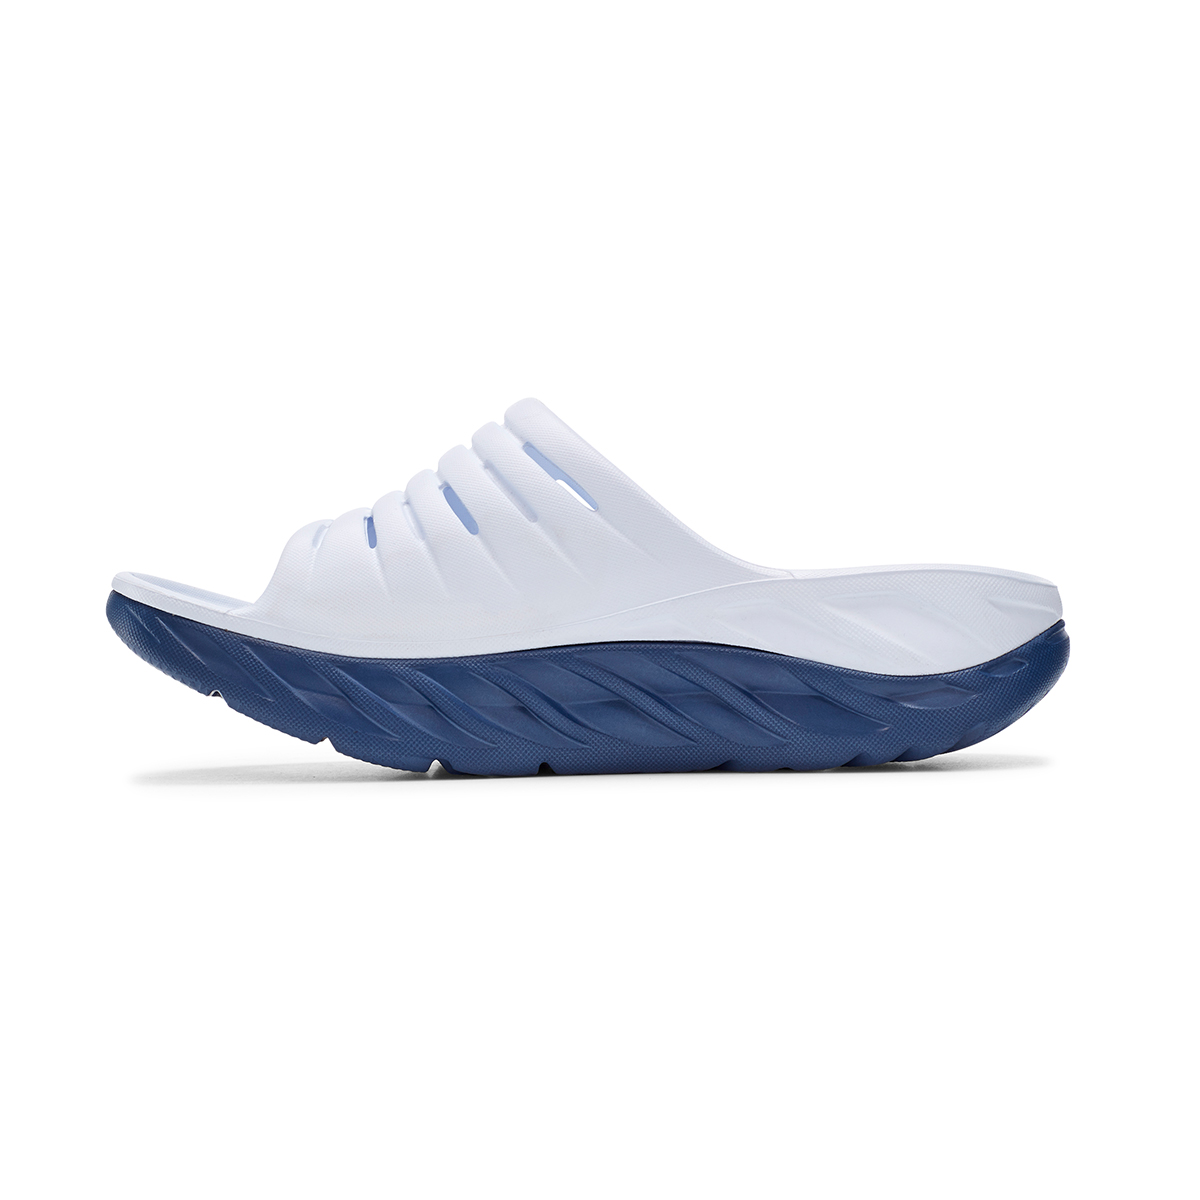 Women's Hoka One One Ora Recovery Slide - Color: White/Vintage - Size: 5 - Width: Regular, White/Vintage, large, image 2